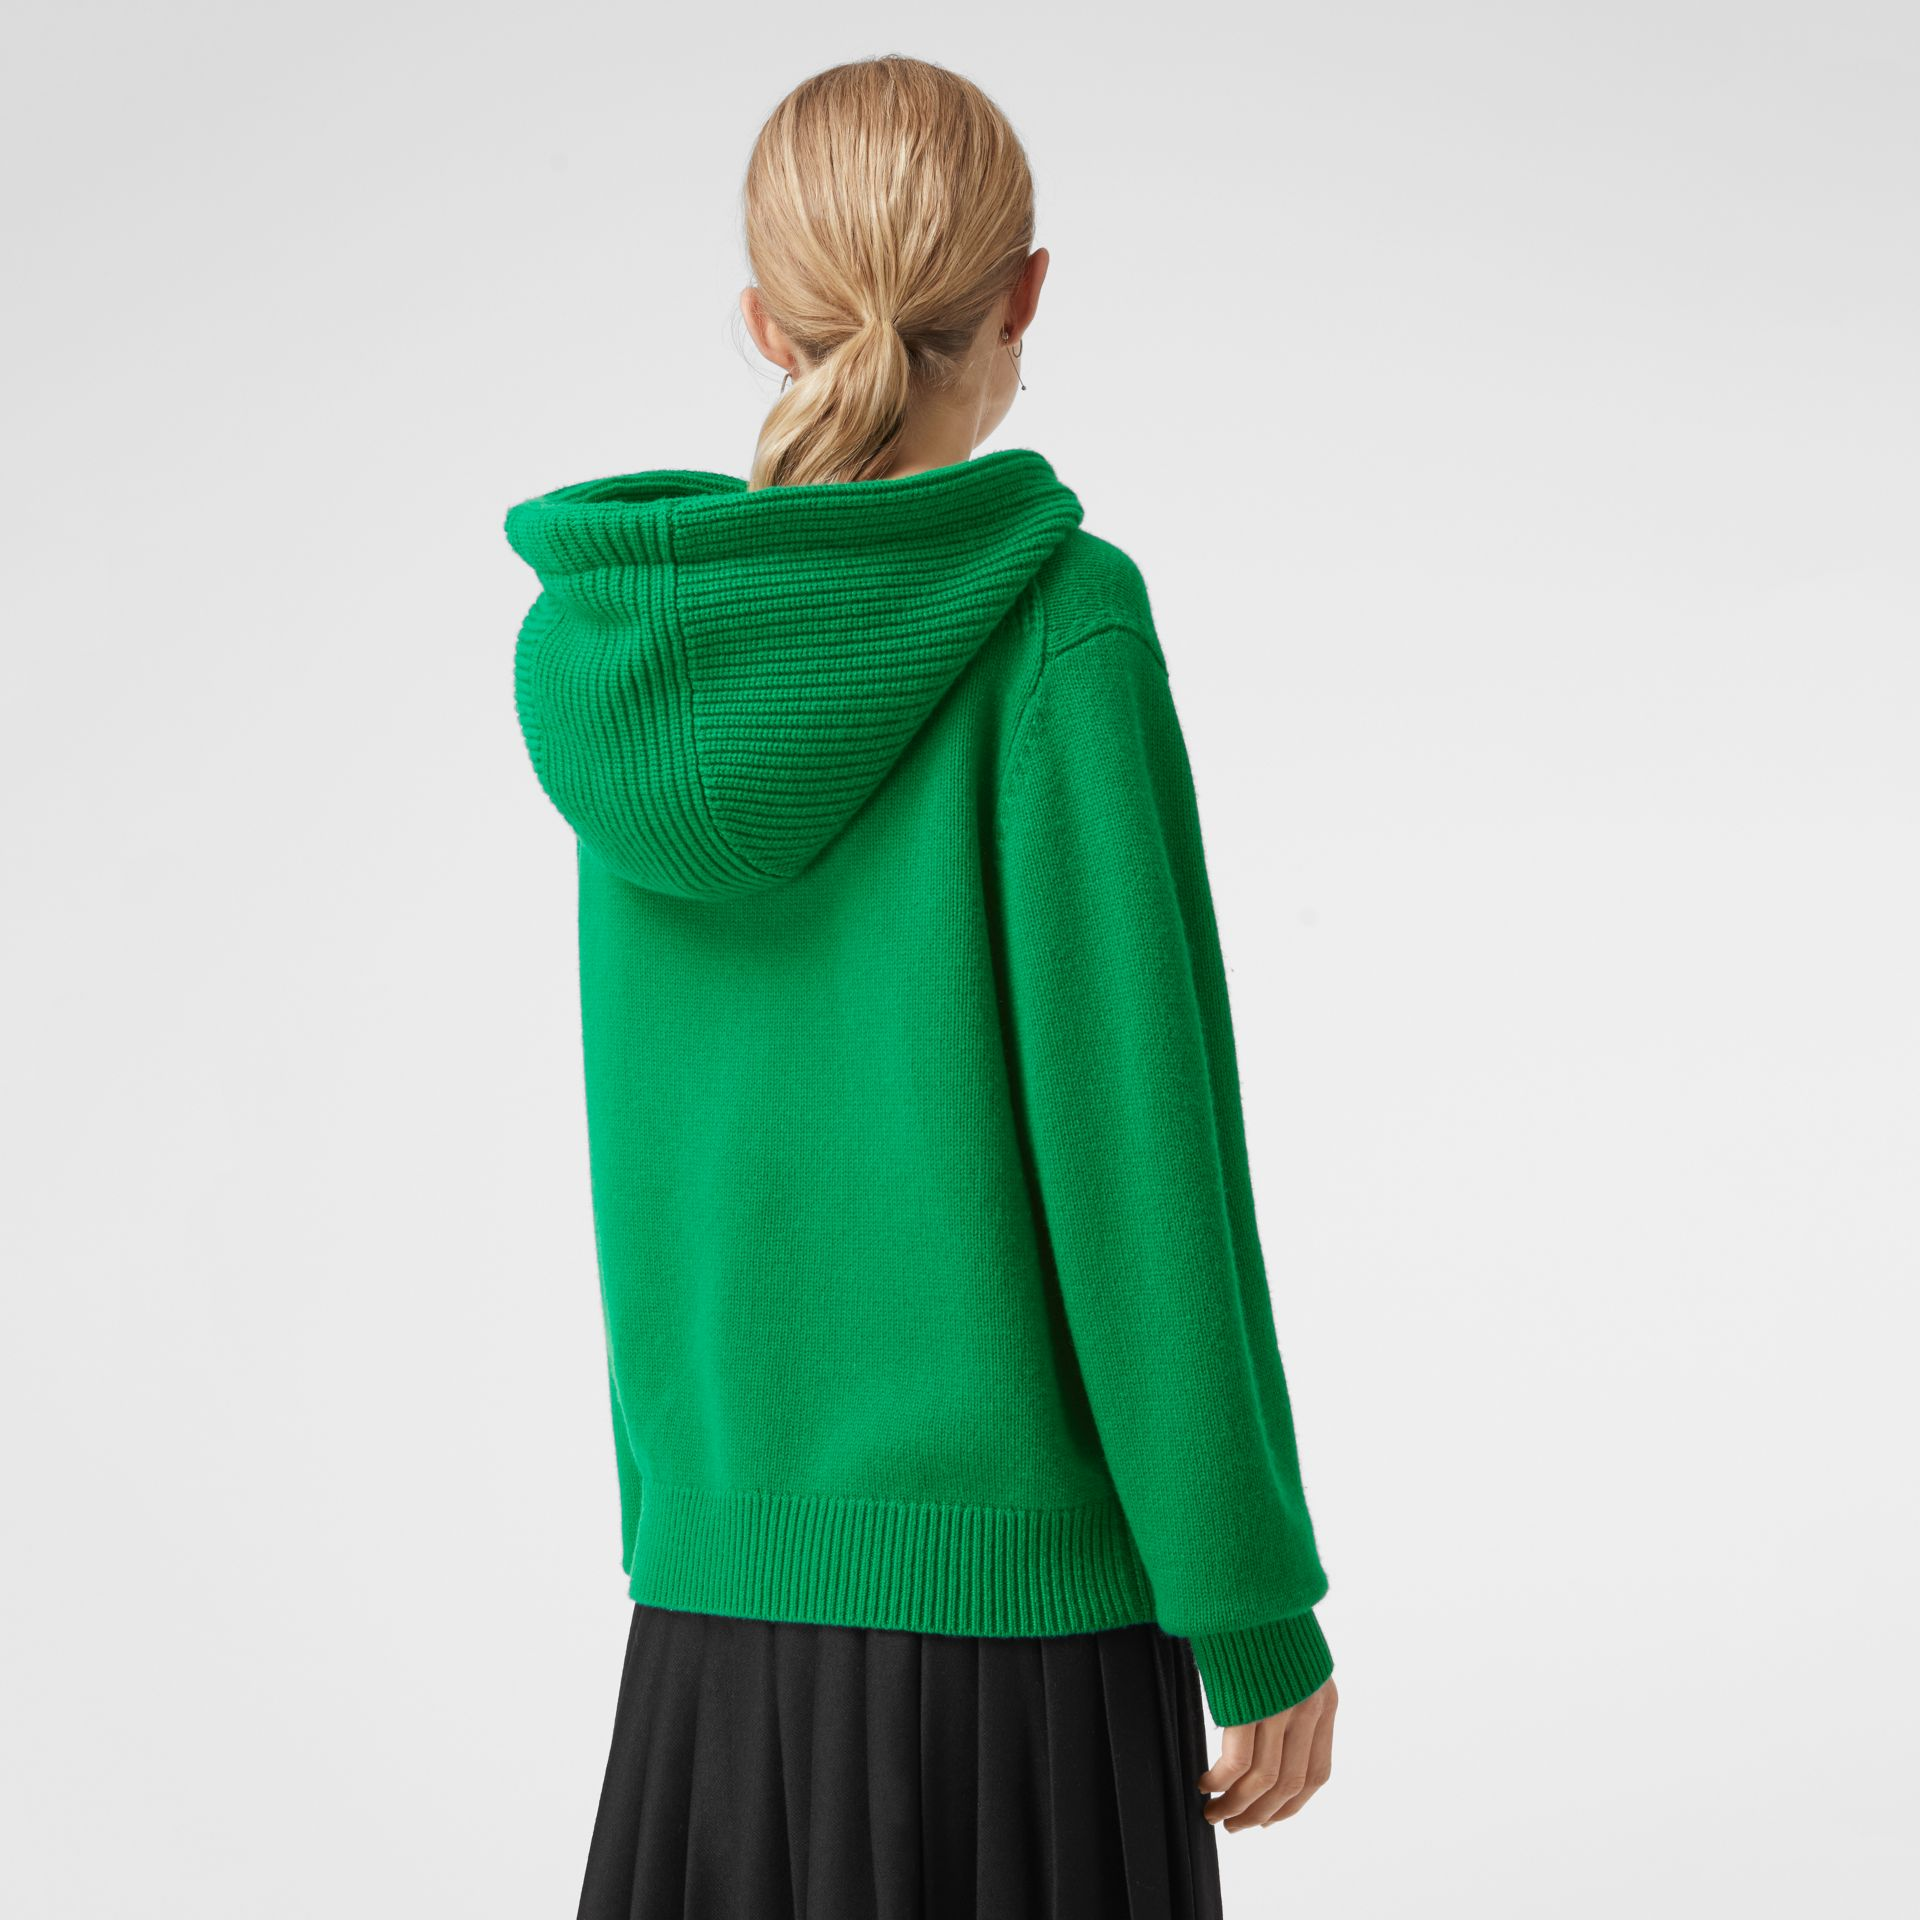 Embroidered Crest Cashmere Hooded Top in Vibrant Green - Women | Burberry - gallery image 2